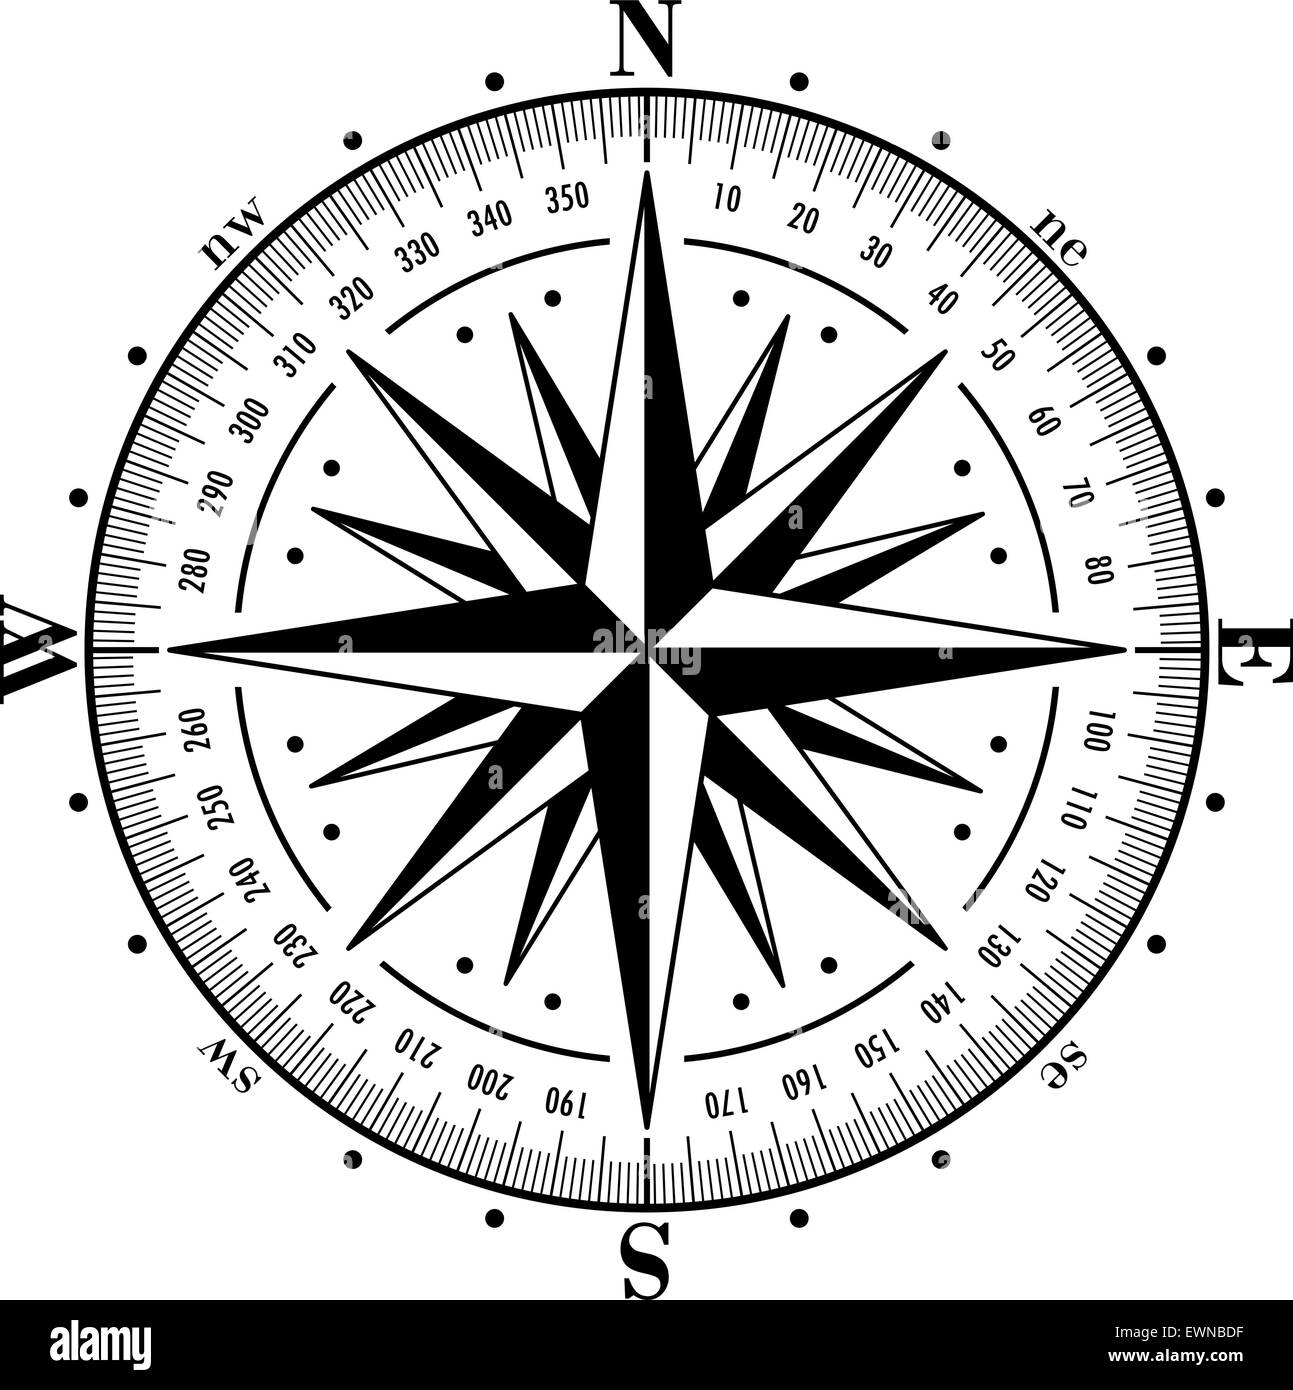 Popular Image Of A Compass Rose